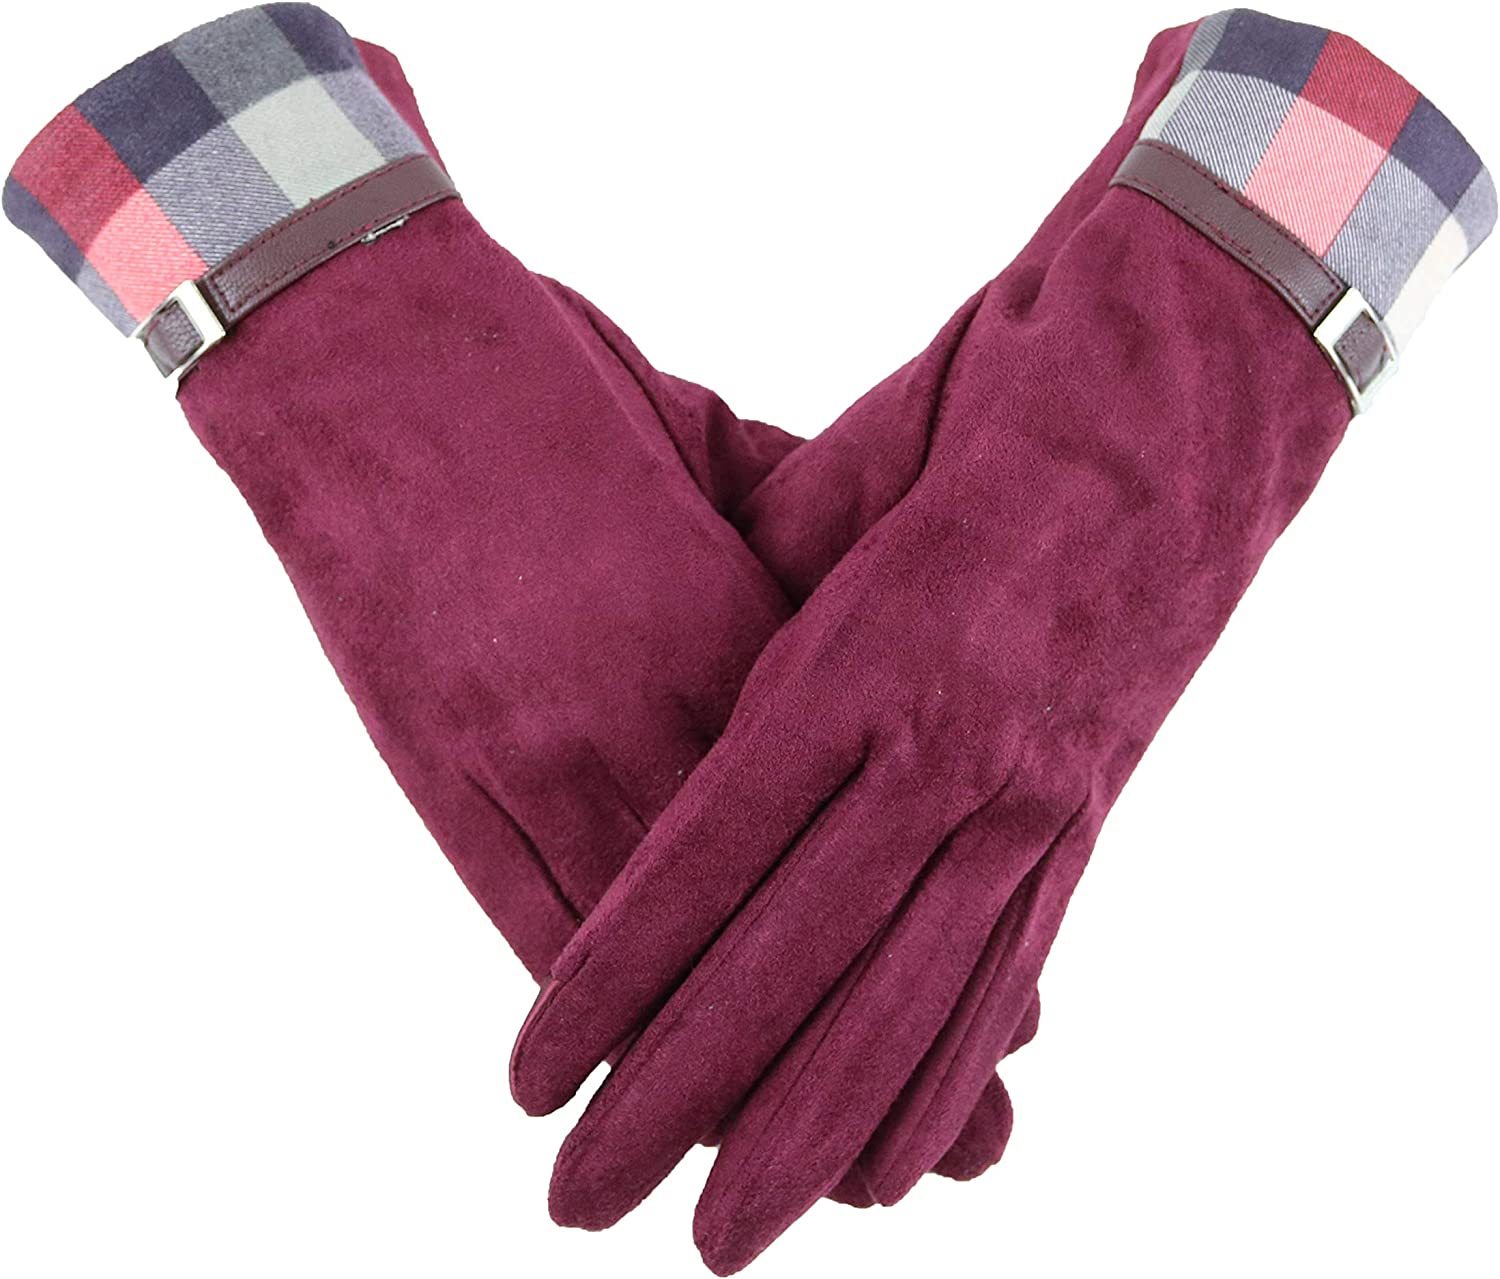 MJScarf Womens Fashion Plaid Splice Windproof Gloves Winter Warm Wear can Touch Screen Phone